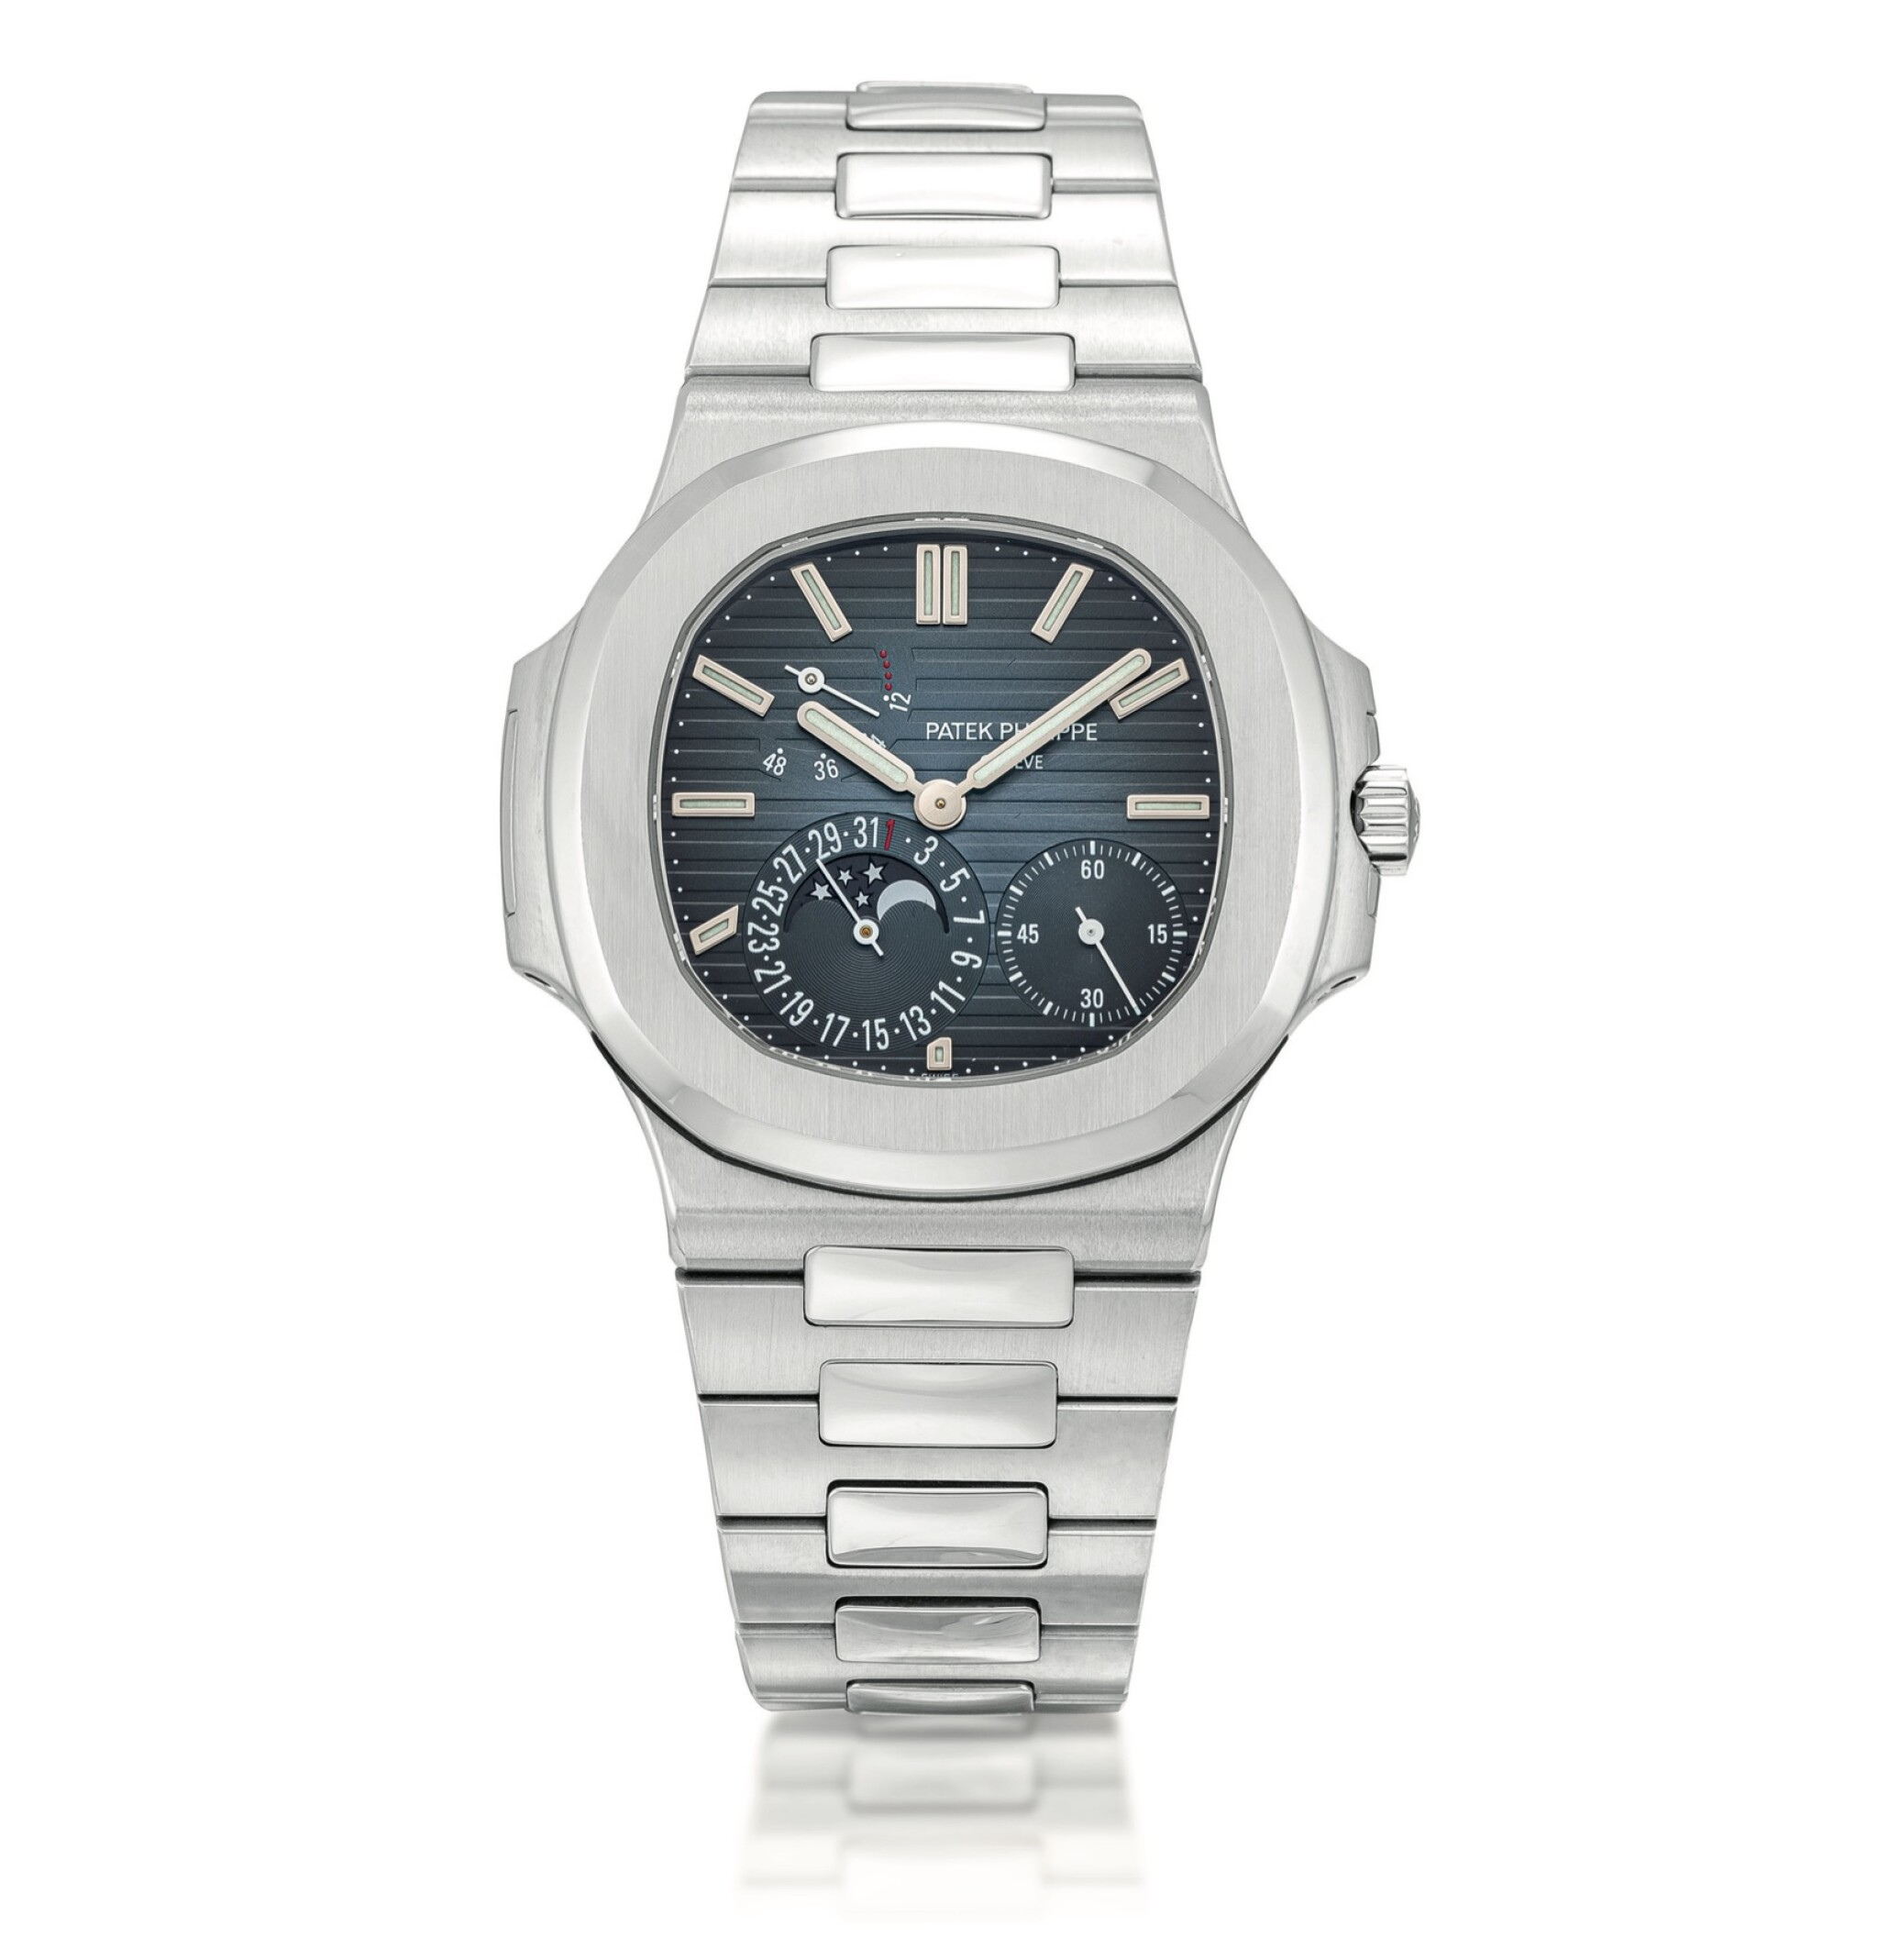 View full screen - View 1 of Lot 2080. Patek Philippe | Nautilus, Reference 5712, A stainless steel bracelet watch with date, moon phases and power reserve indication, Circa 2007 | 百達翡麗 | Nautilus 型號5712   精鋼鏈帶腕錶,備日期、月相及動力儲備顯示,約2007年製.